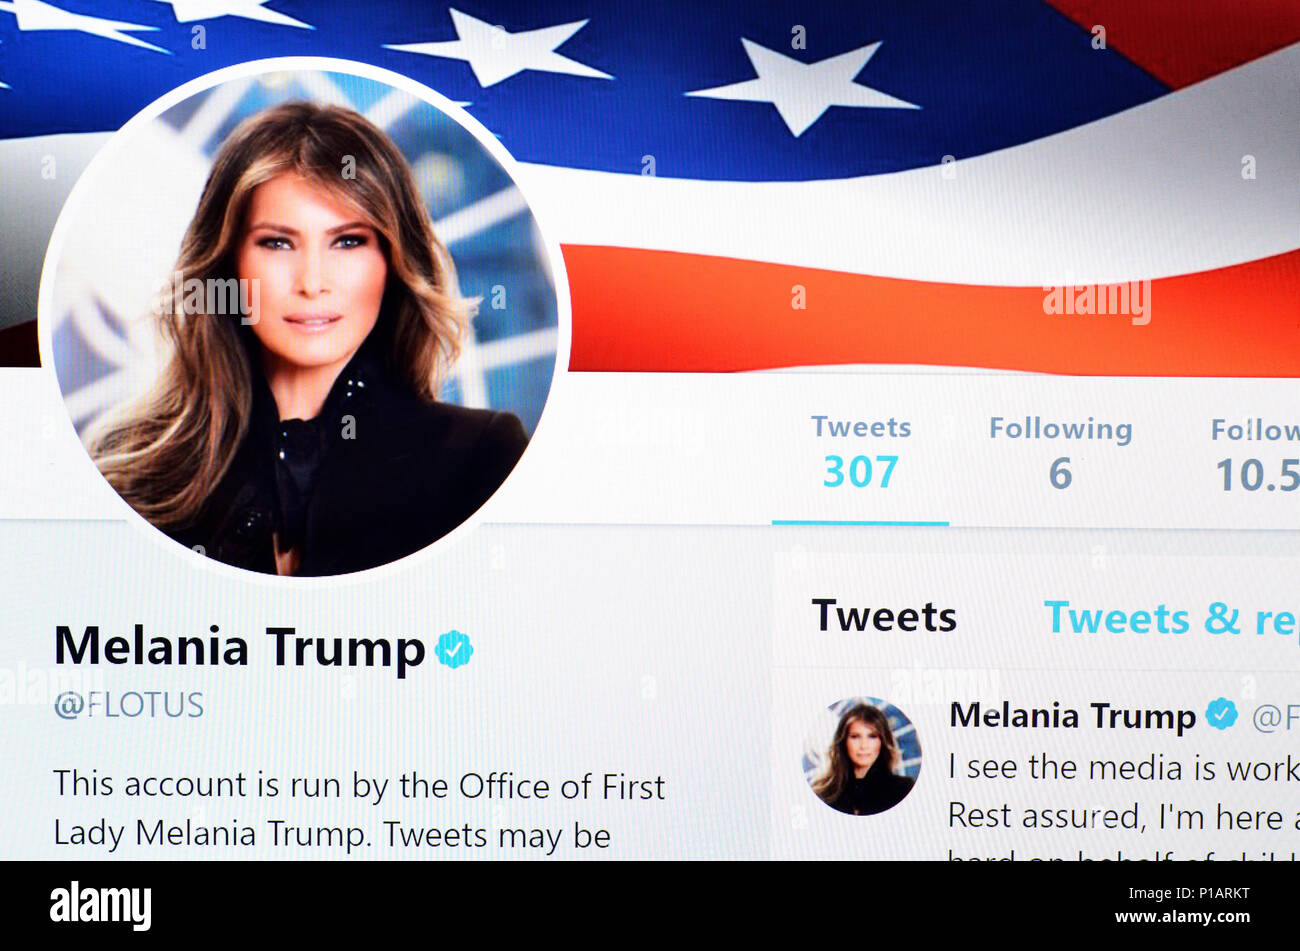 Melania Trump Twitter account home page (June 2018) - Stock Image